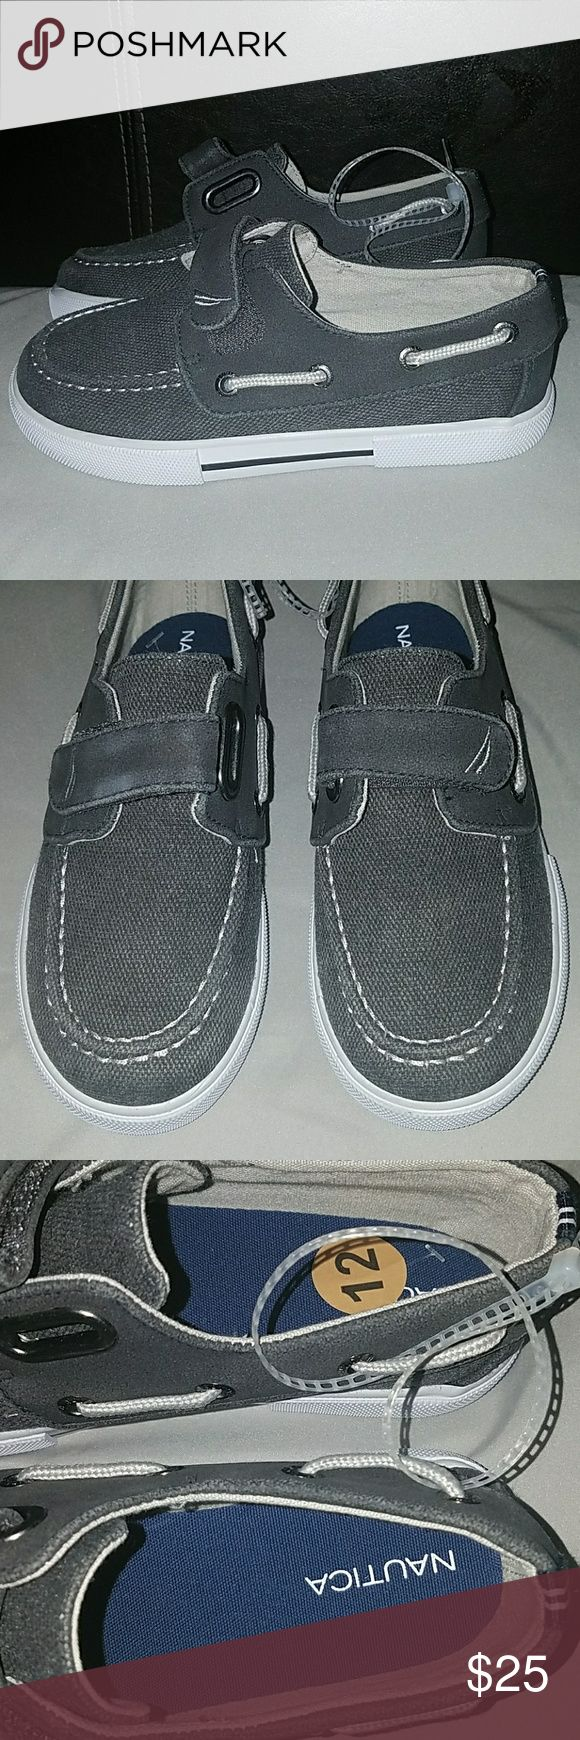 Nautica Boys Sperrys New. Doswnt fit my brother. Nautica Shoes Dress Shoes